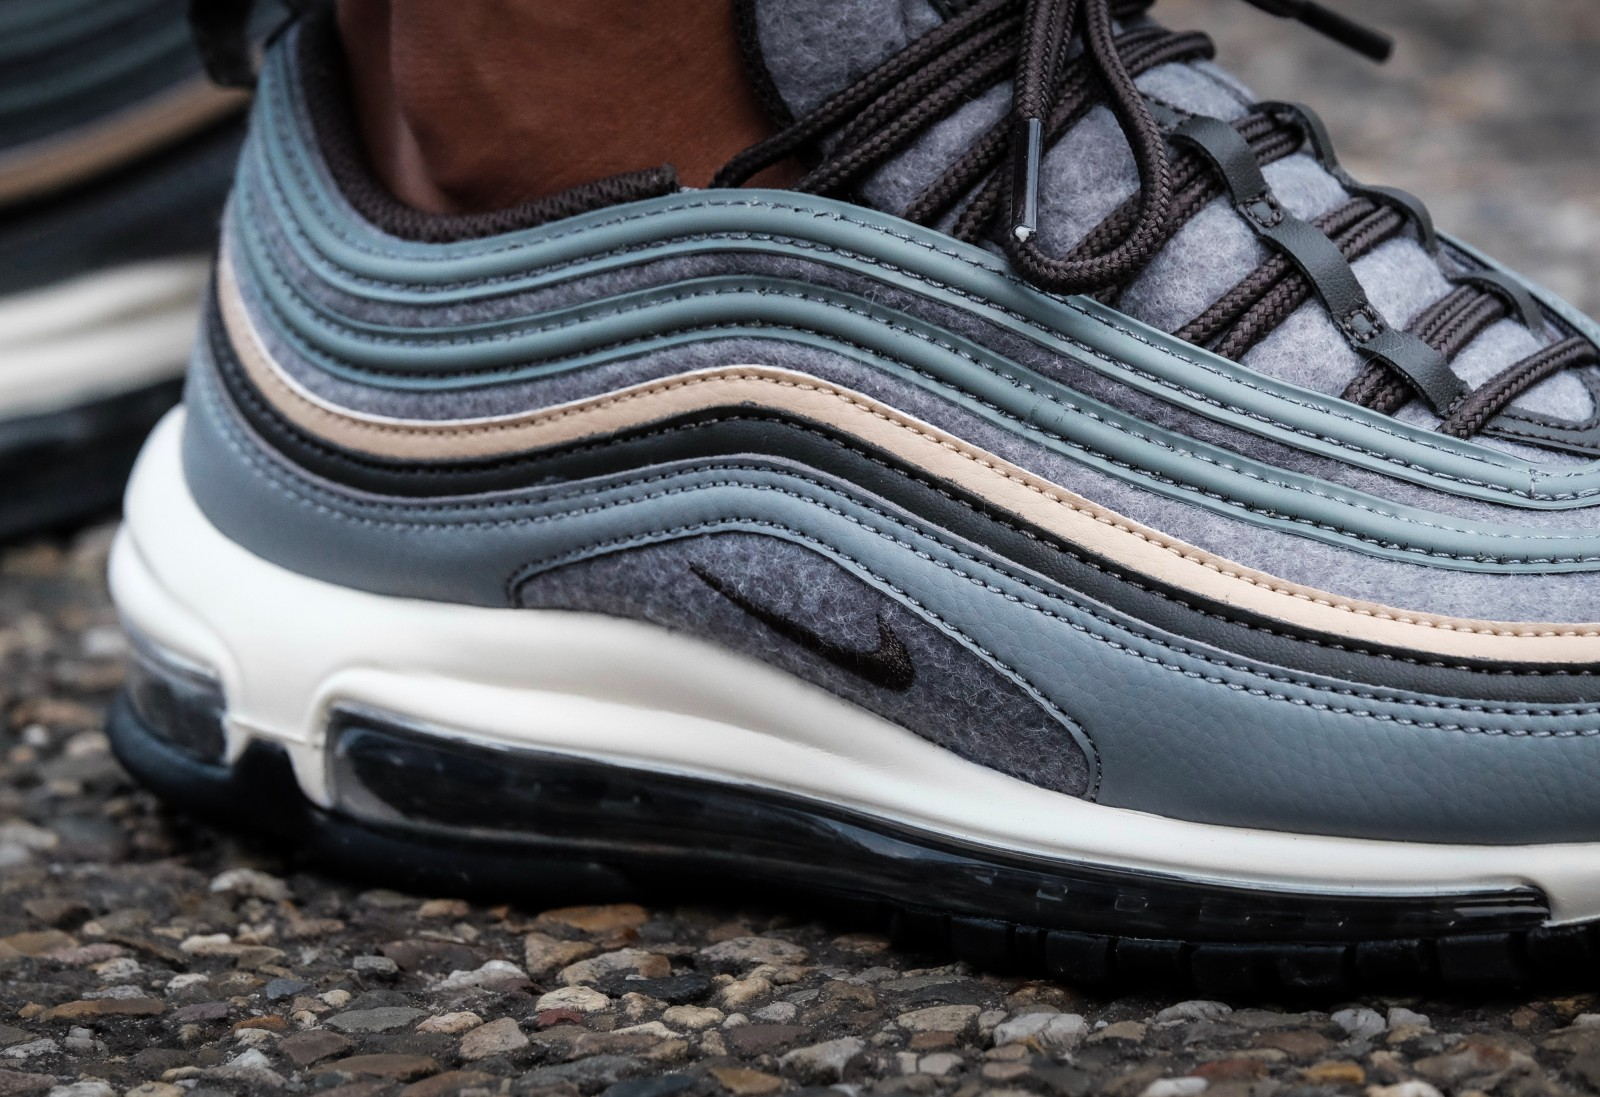 Cheap Nike Air Max 97 $353 Buy AW17 Online Fast Delivery, Price